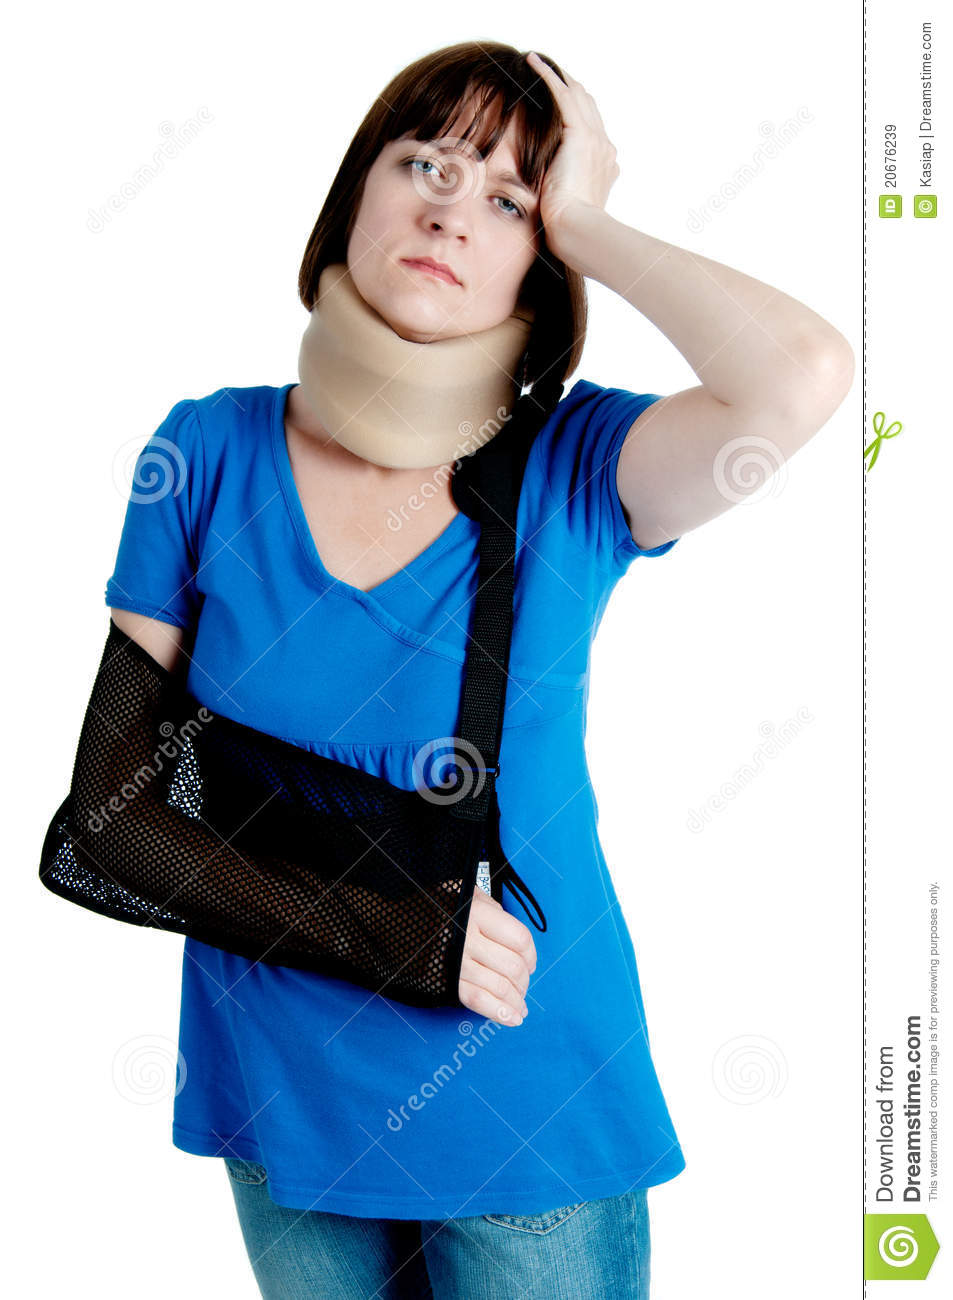 Broken Arm Woman with broken arm in sling